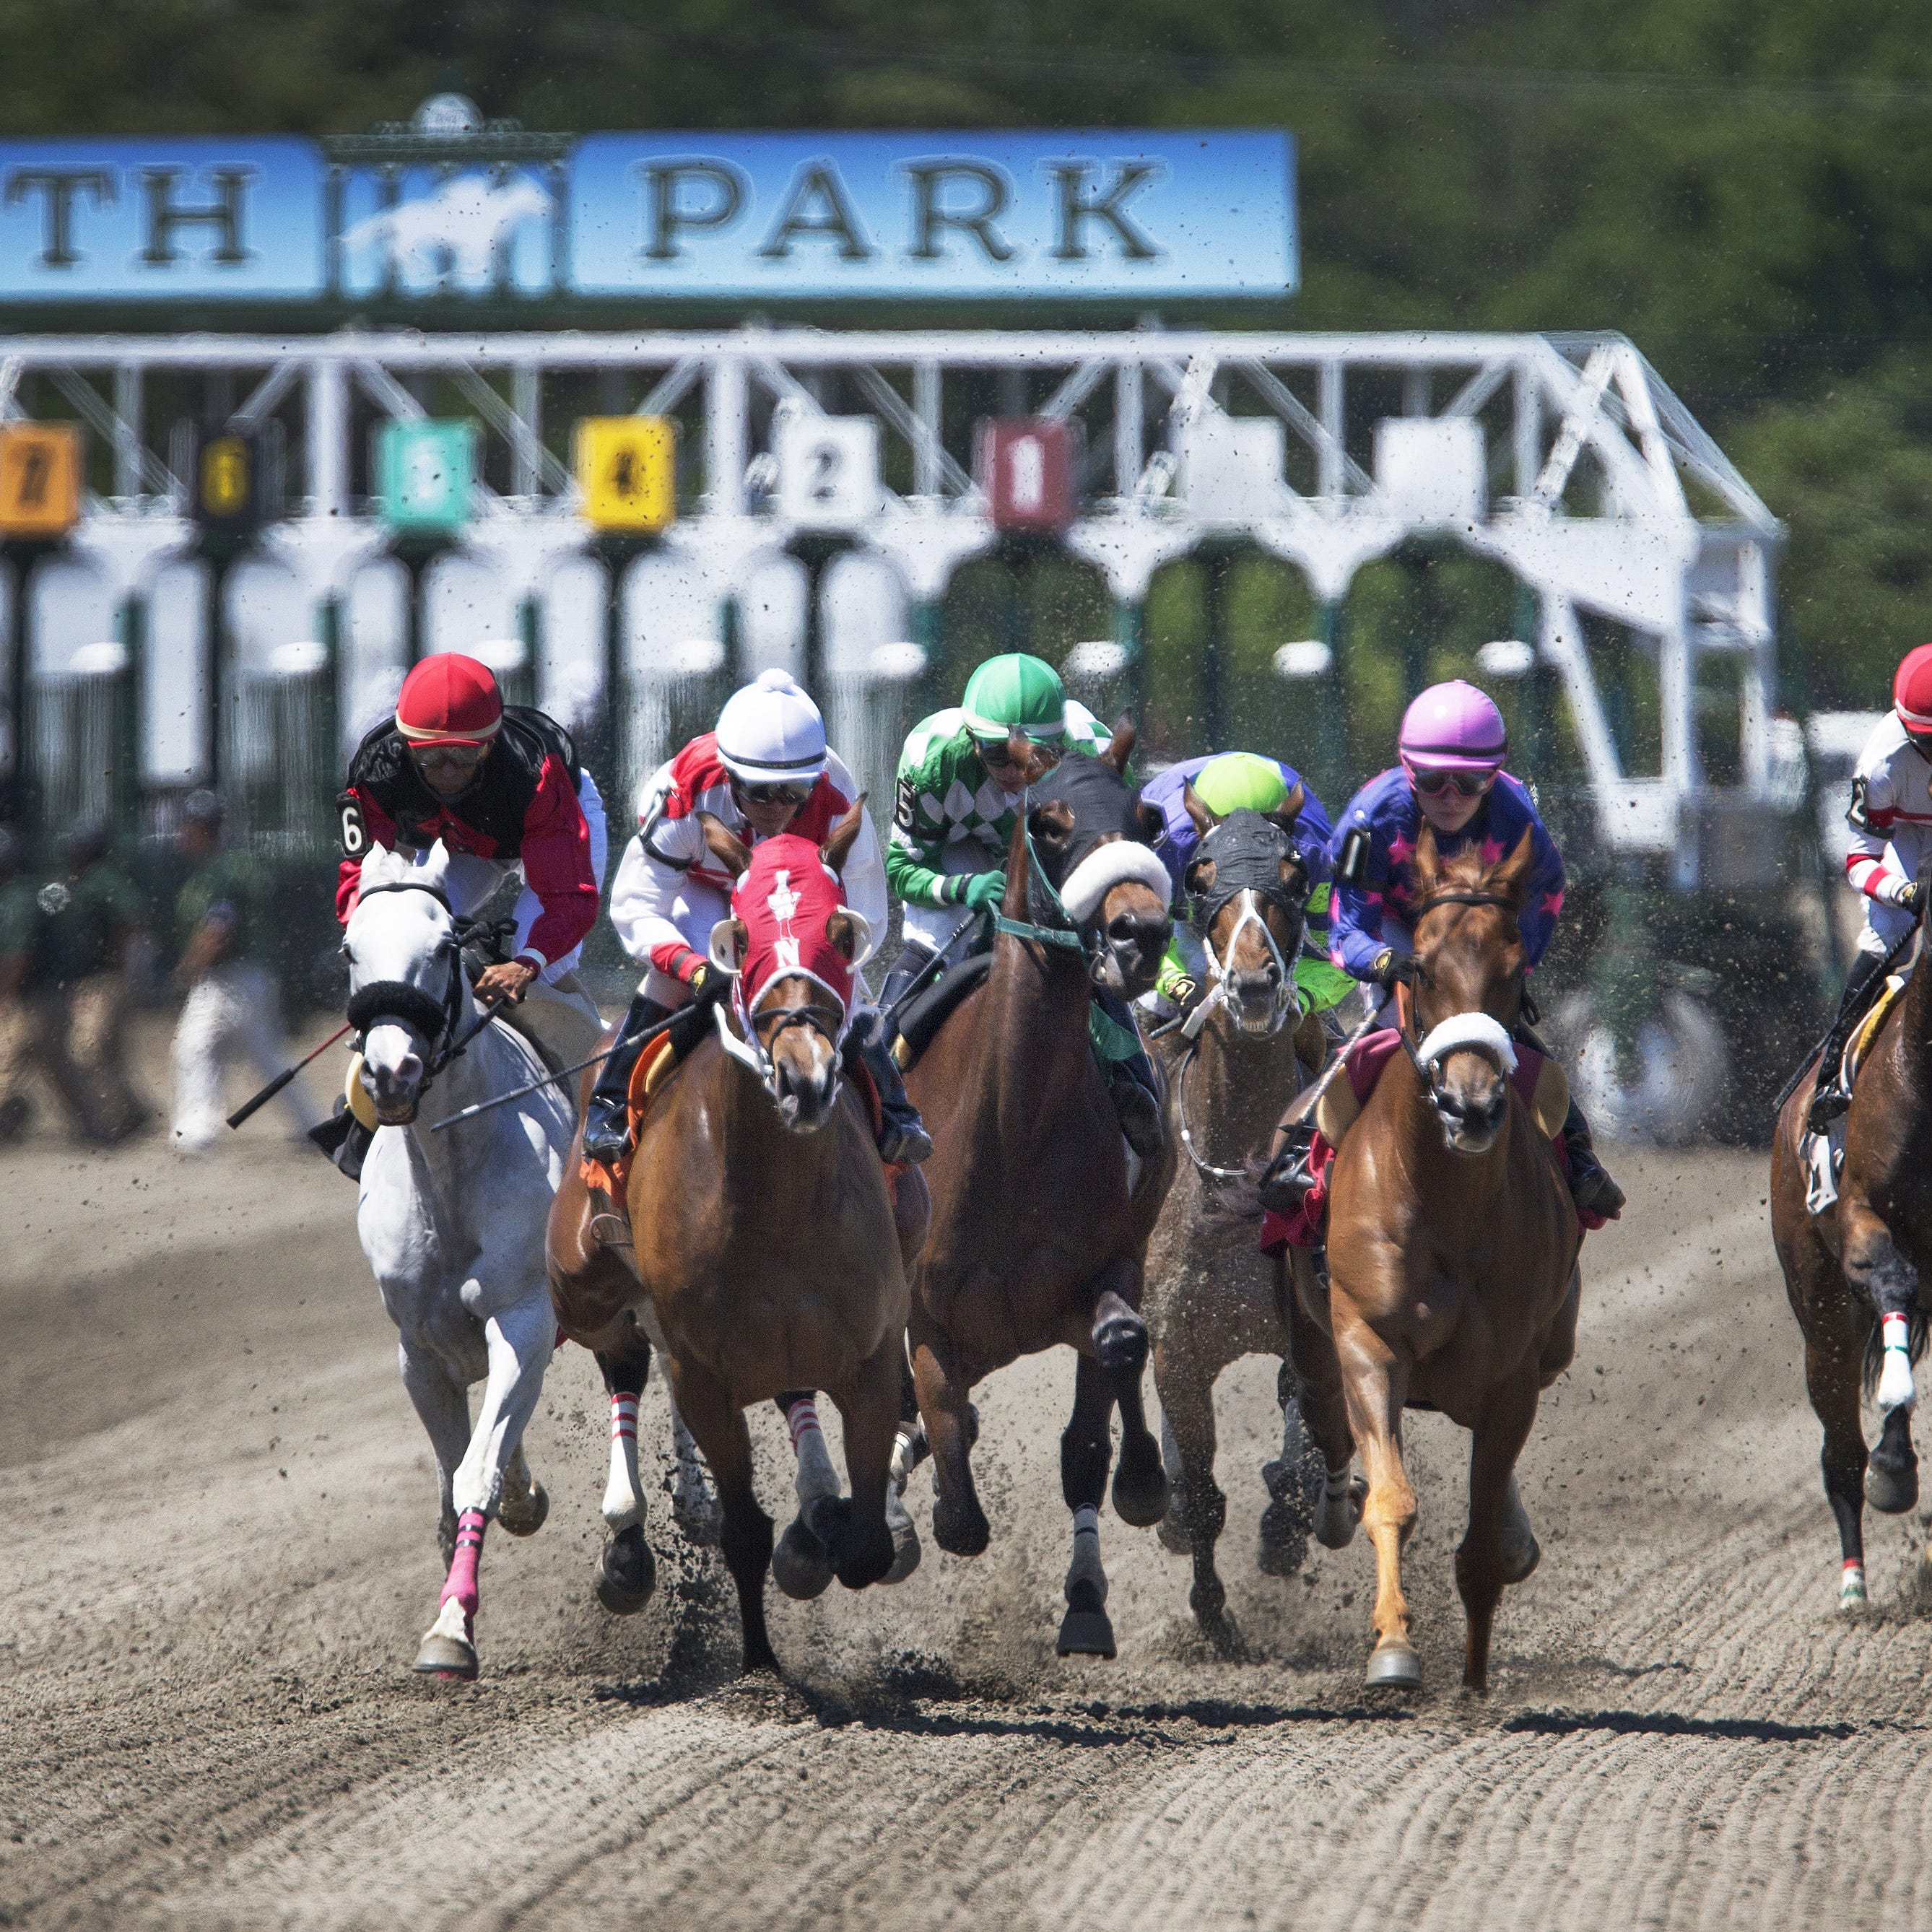 Monmouth Park owes $30 million to management firm, records show